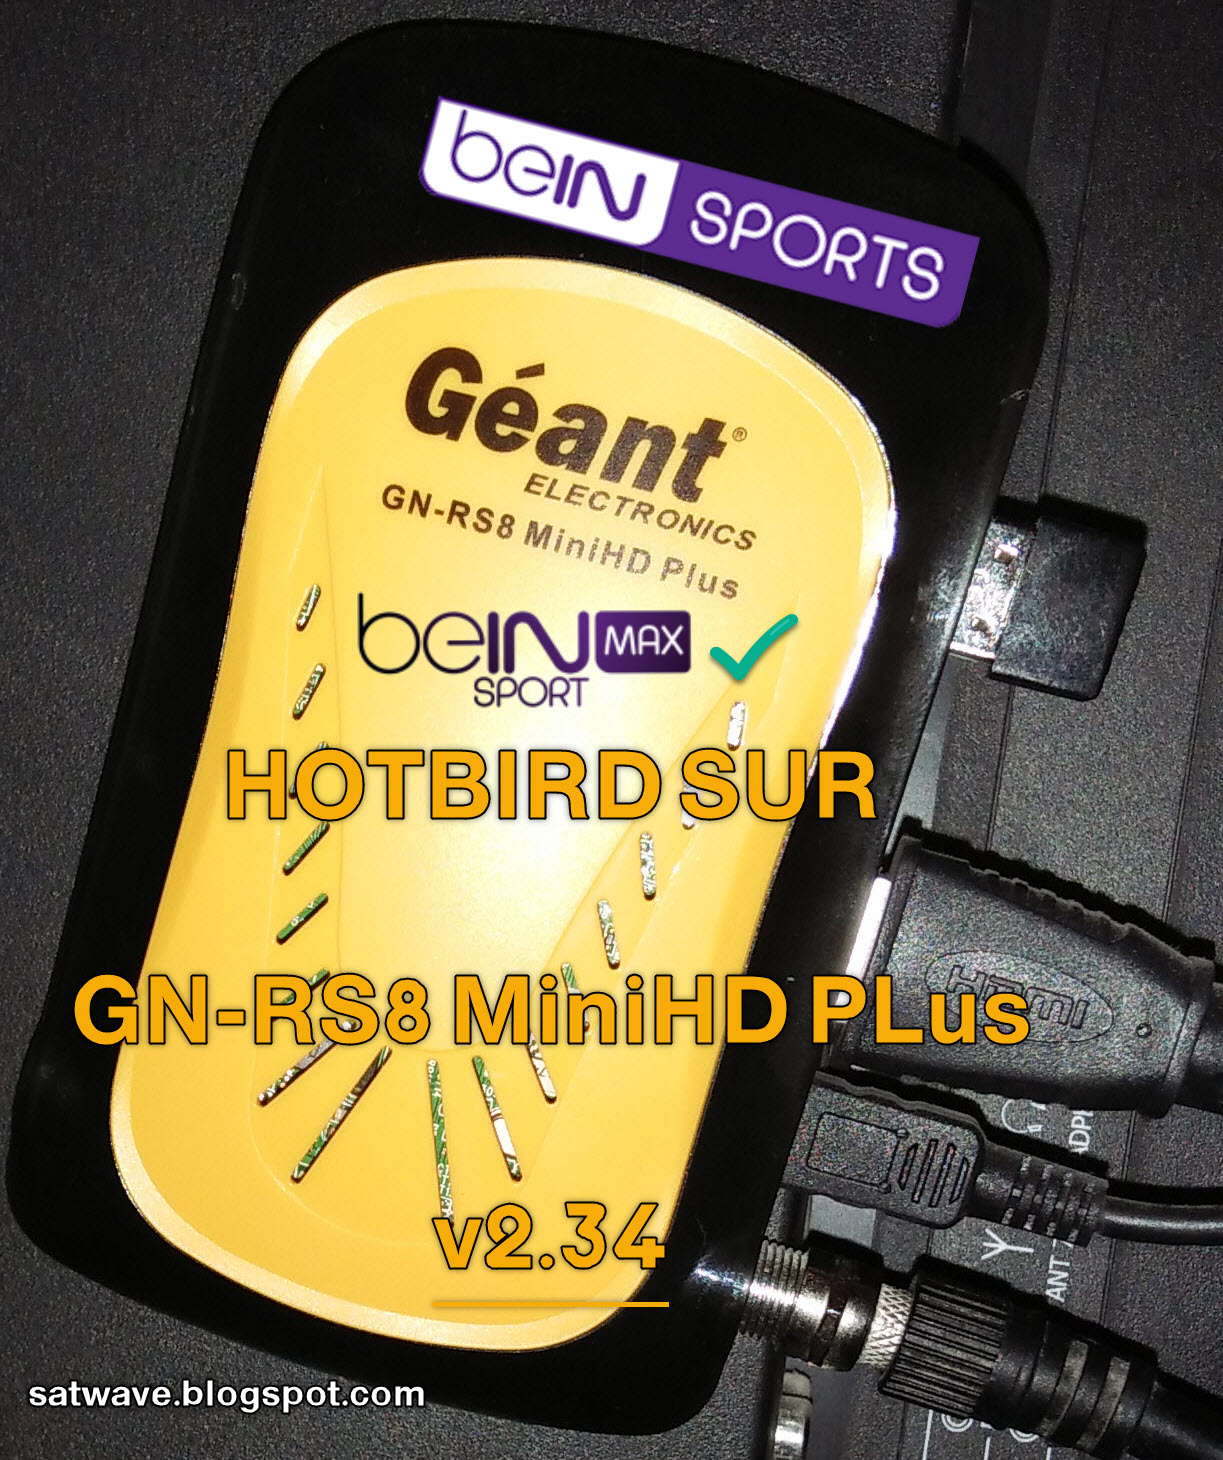 mise a jour geant rs8 minihd plus